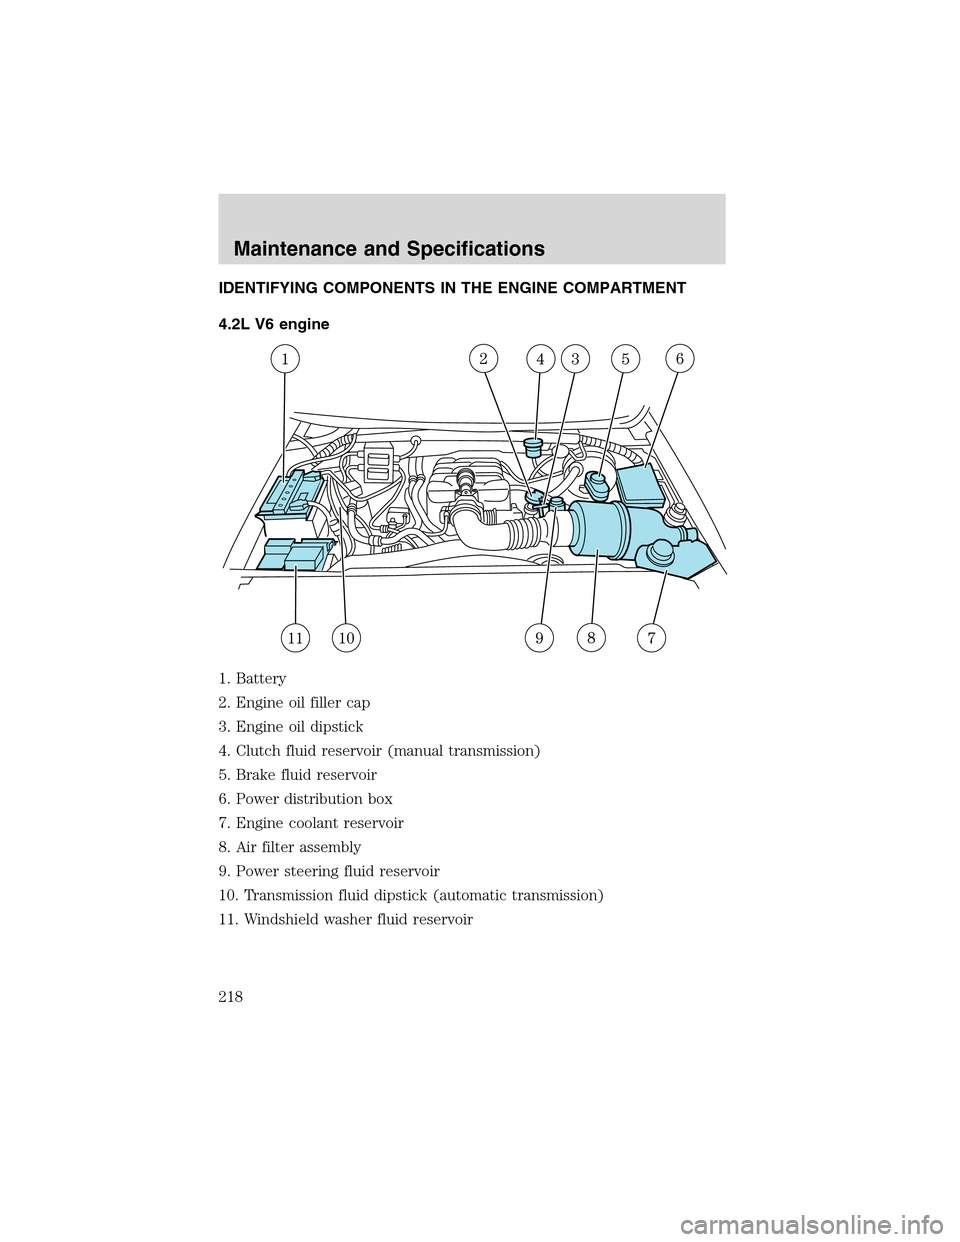 FORD F150 2003 10.G Owners Manual, Page 218. IDENTIFYING COMPONENTS IN THE  ENGINE COMPARTMENT 4.2L V6 engine